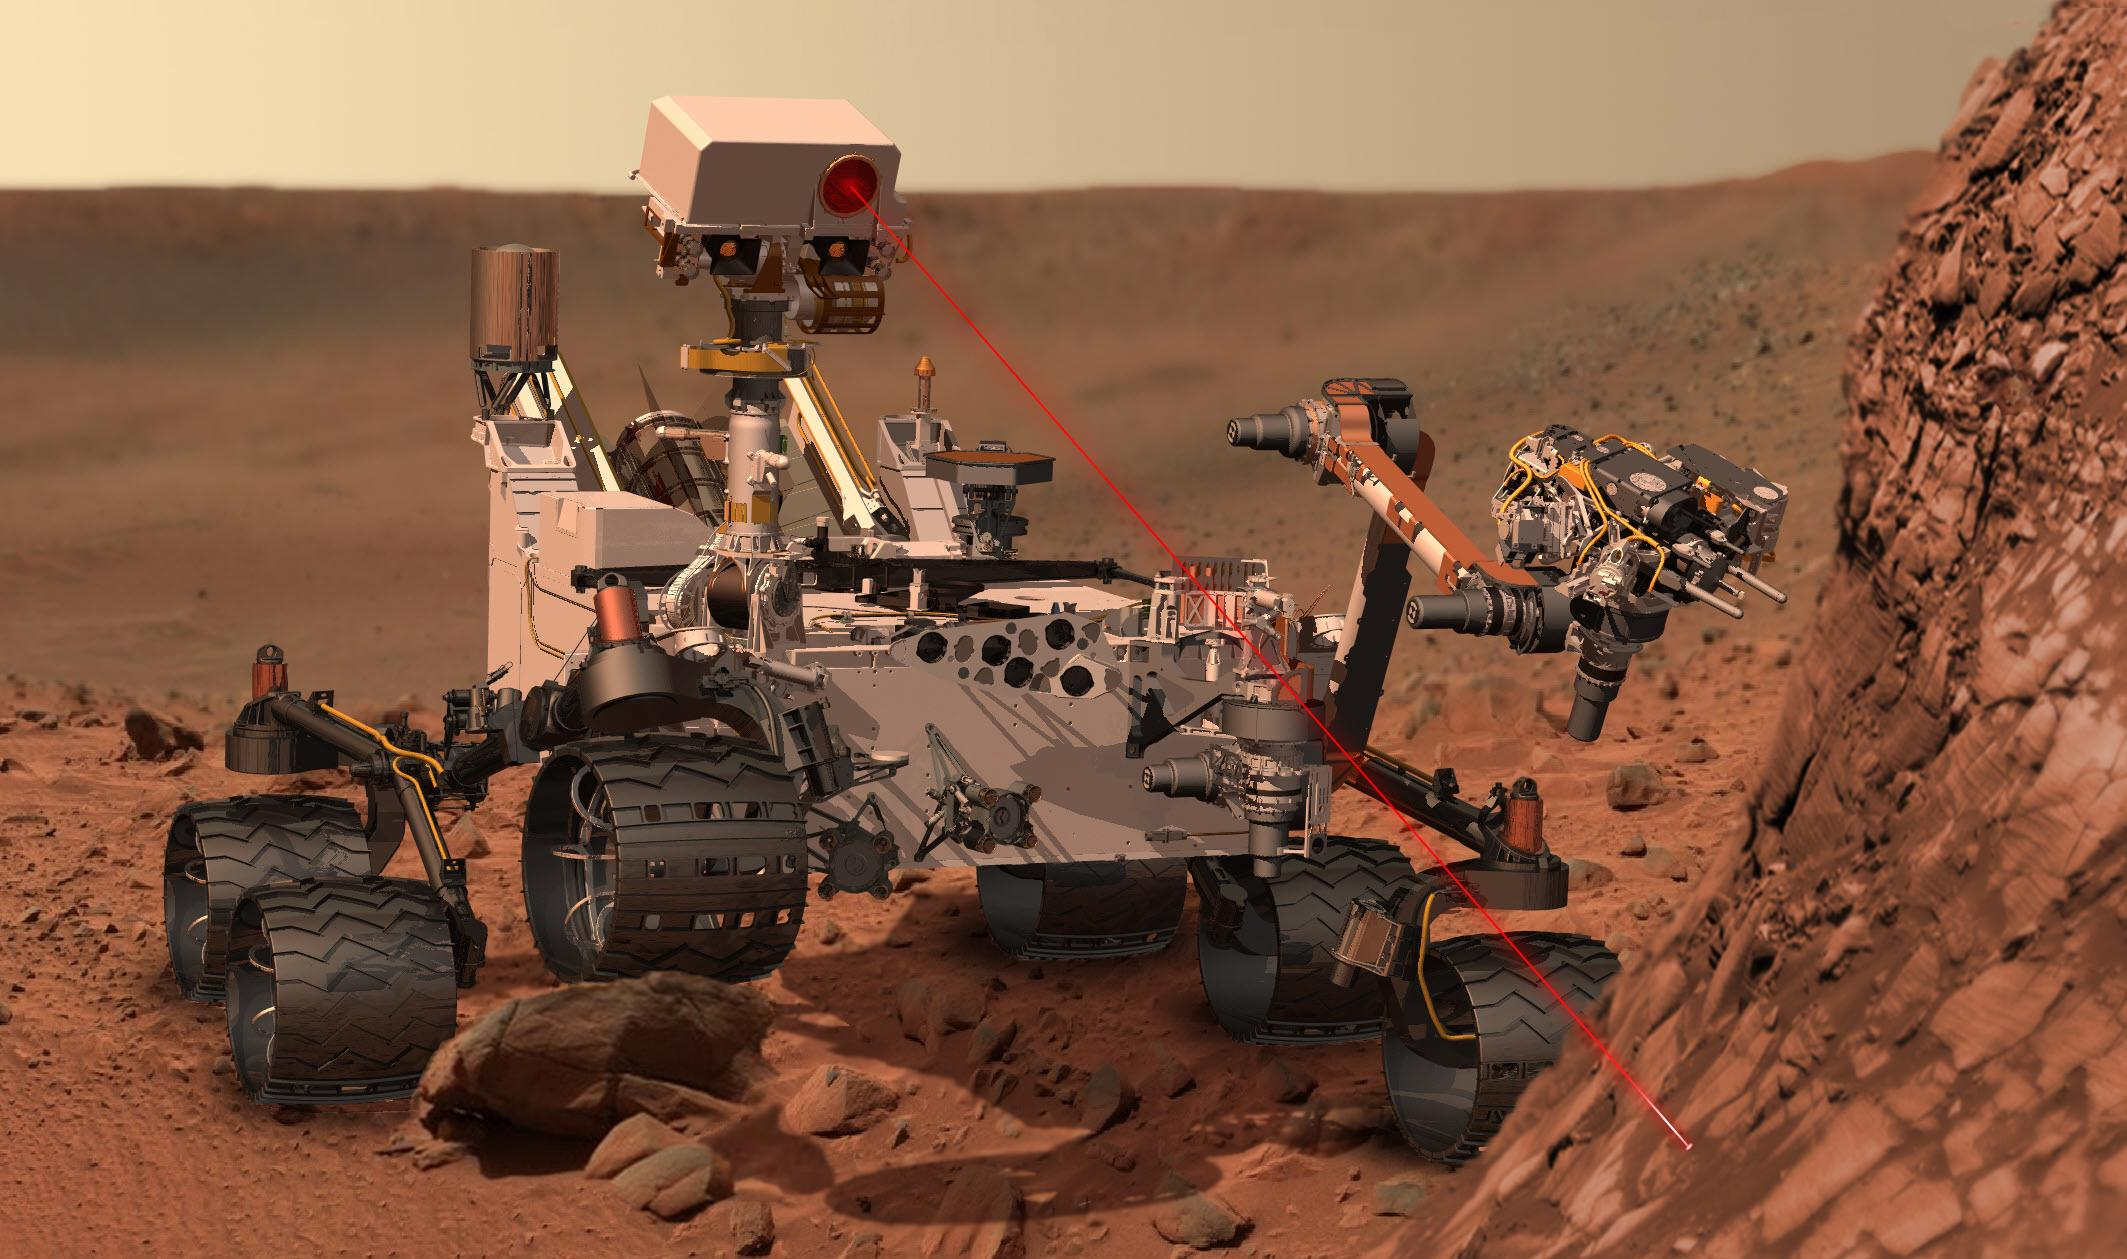 curiosity rover work for nasa